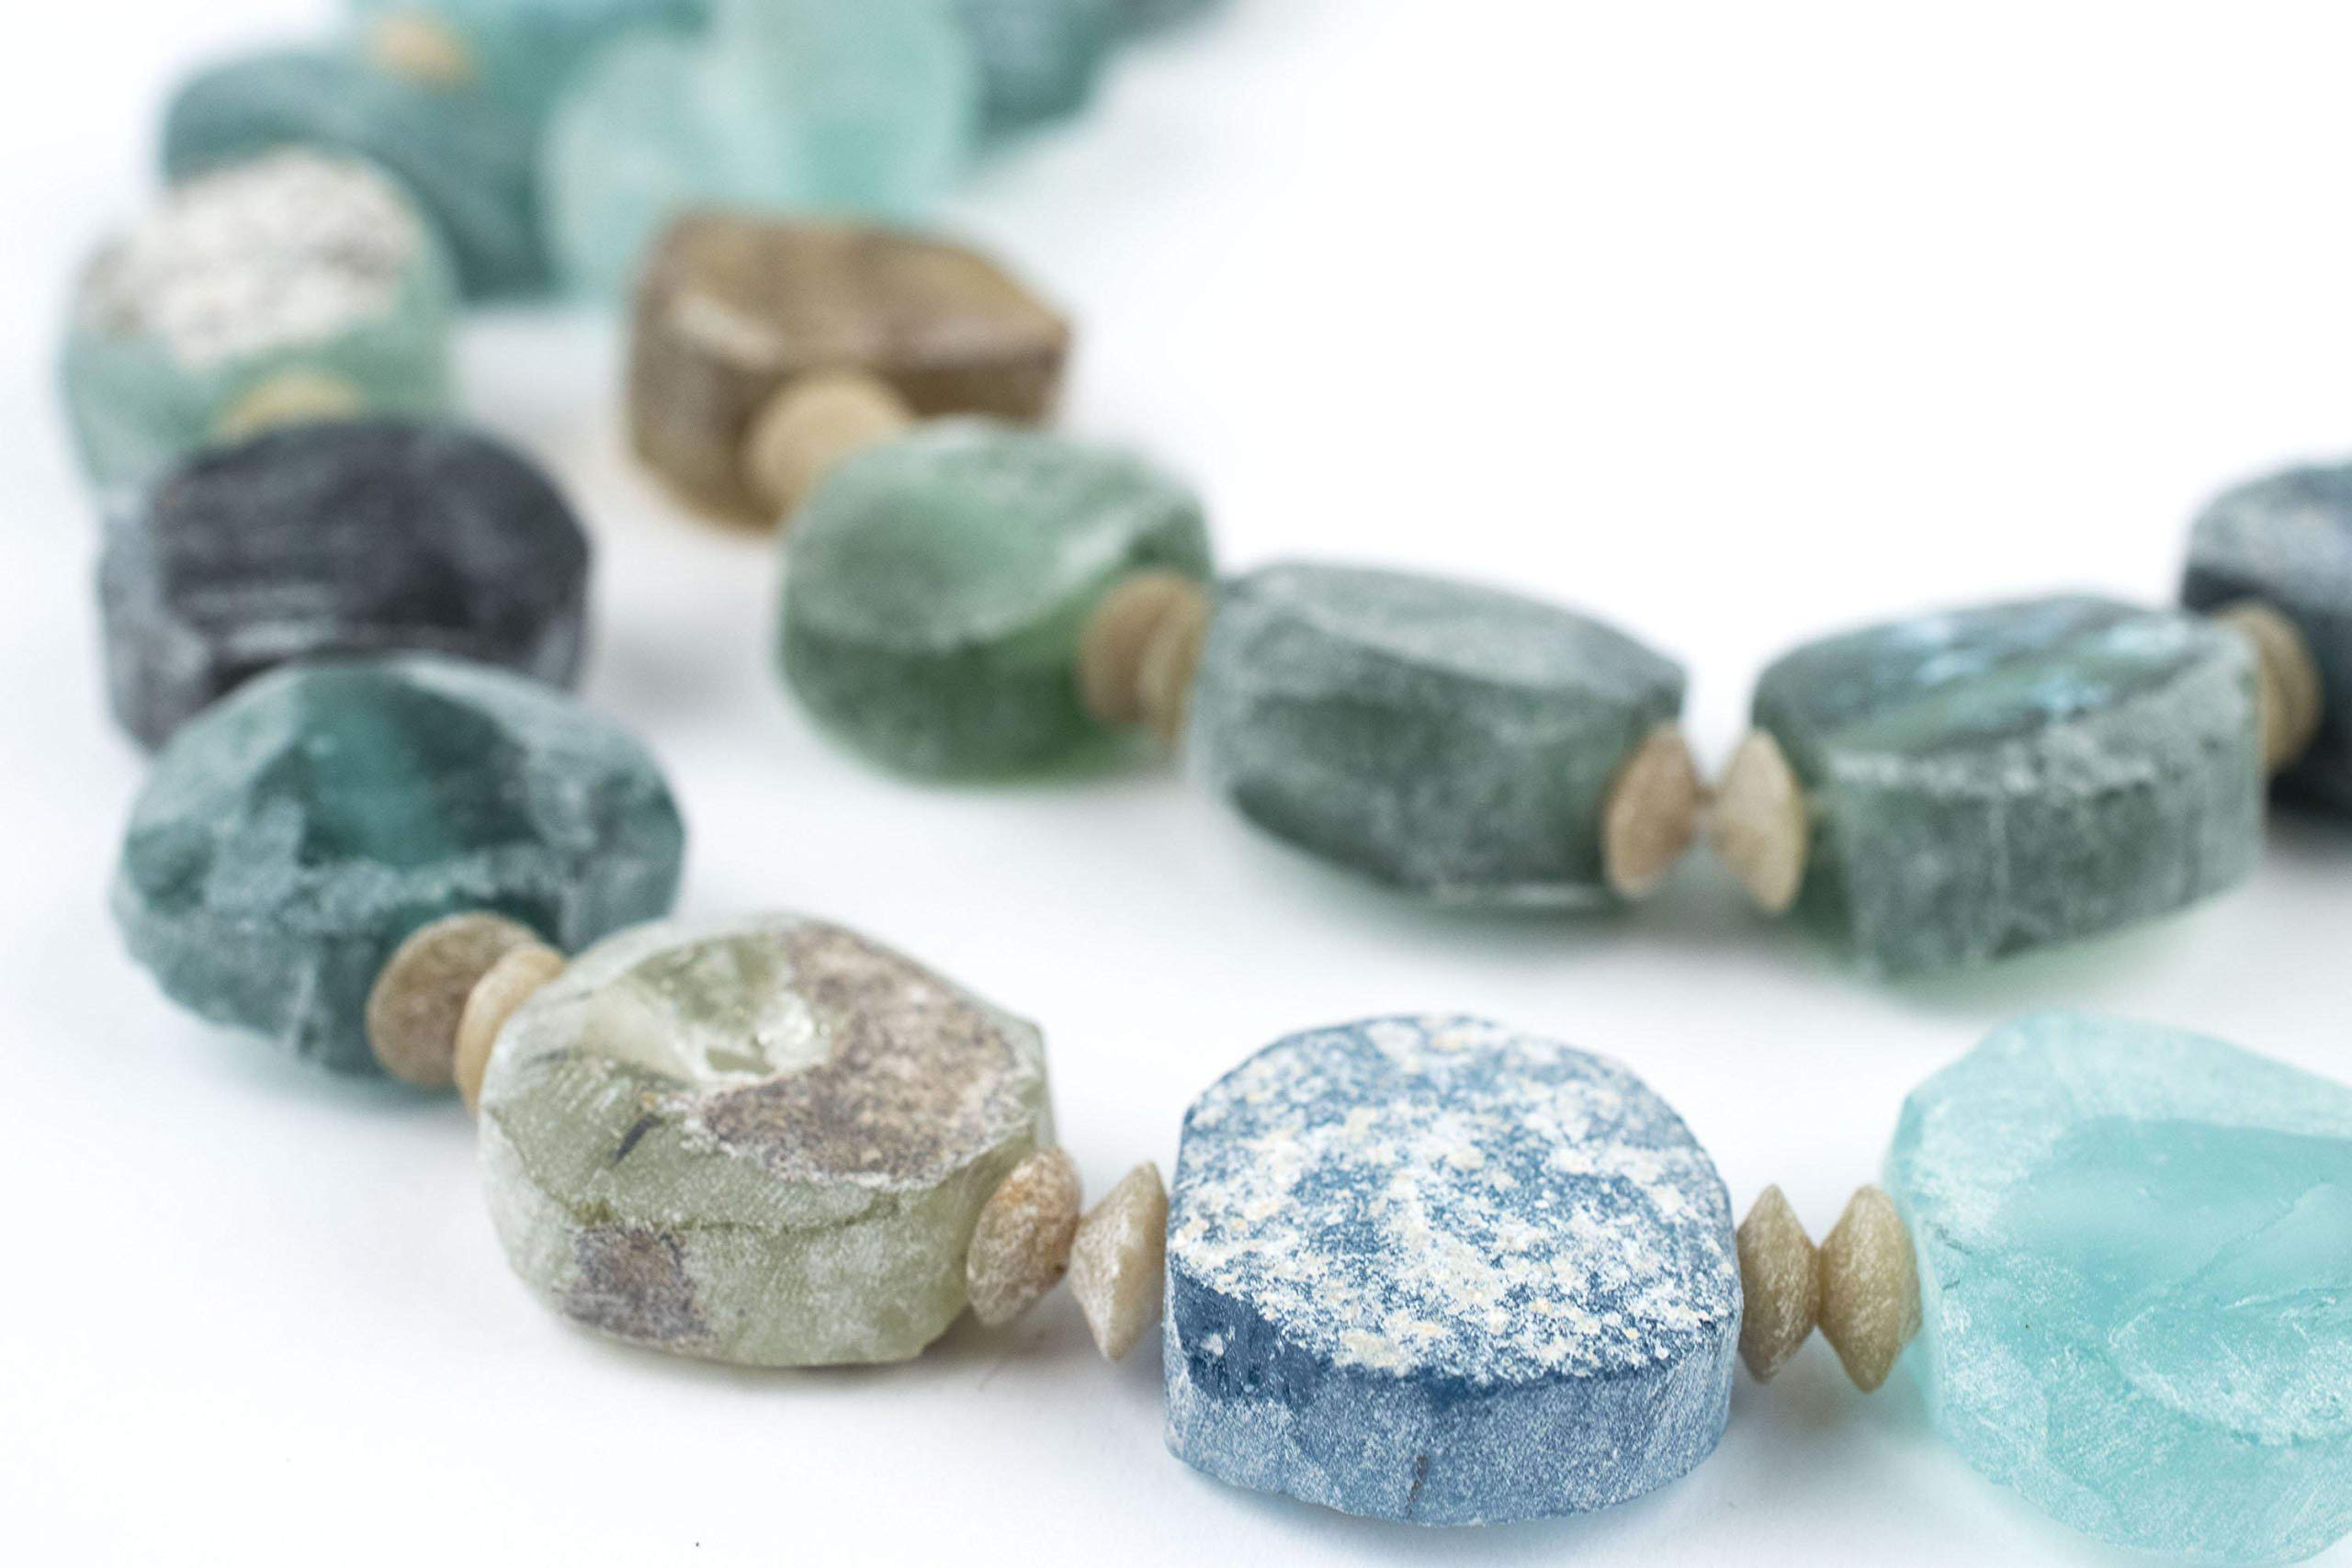 Circle Roman Glass Beads, 100% Authentic and Genuine Ancient Glass, Made in Afghanistan, Matte Glass Beads for Jewelry Making, The Bead Chest